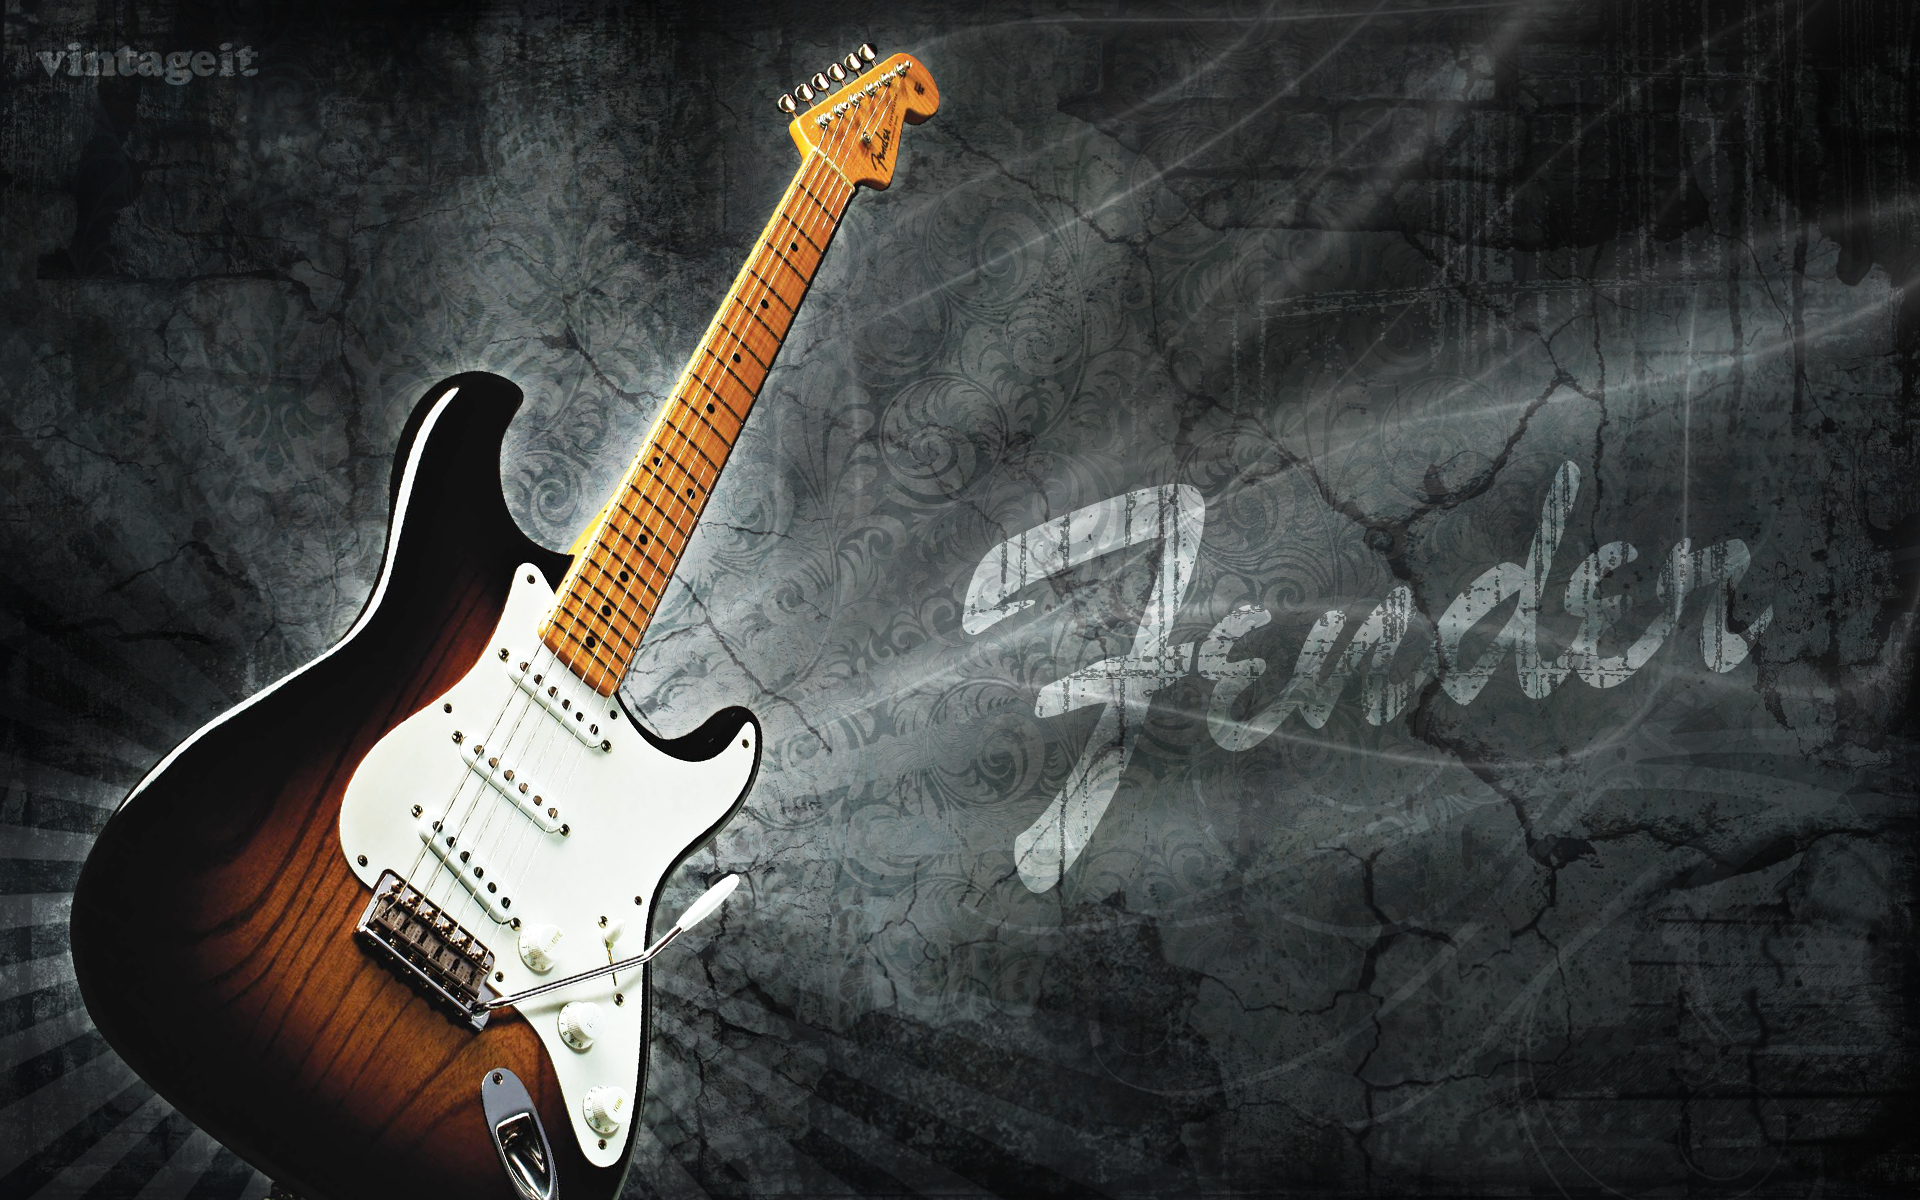 Image: Wallpaper-Fender-NLU87.jpg